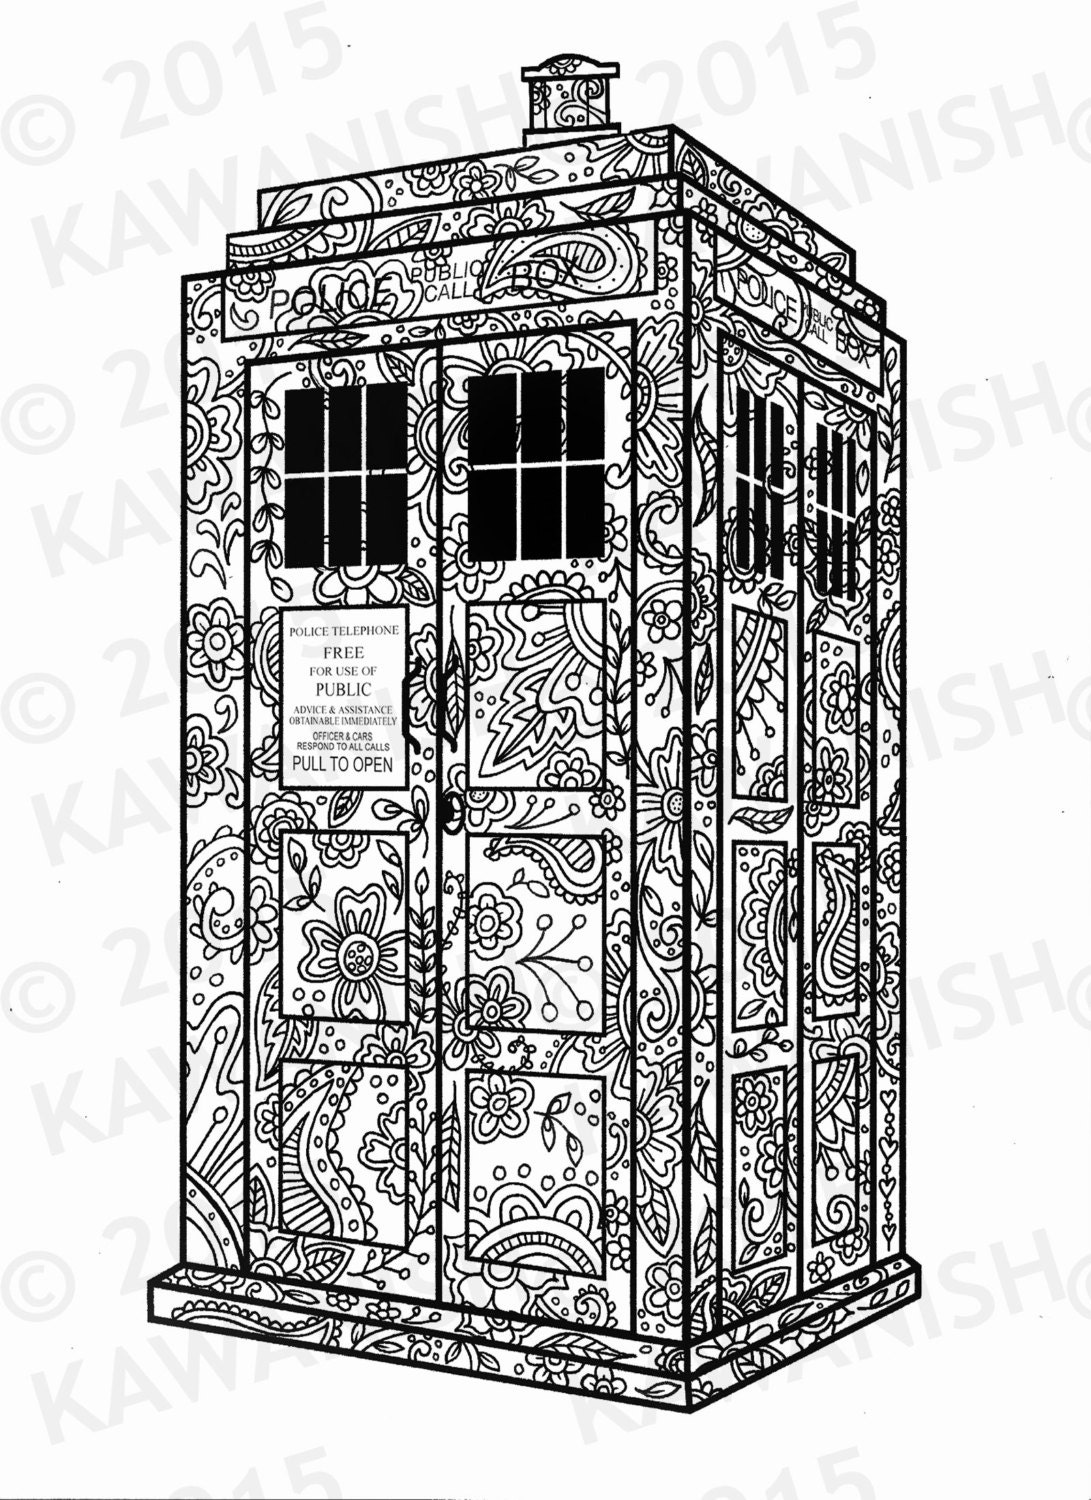 tardis dr who coloring page